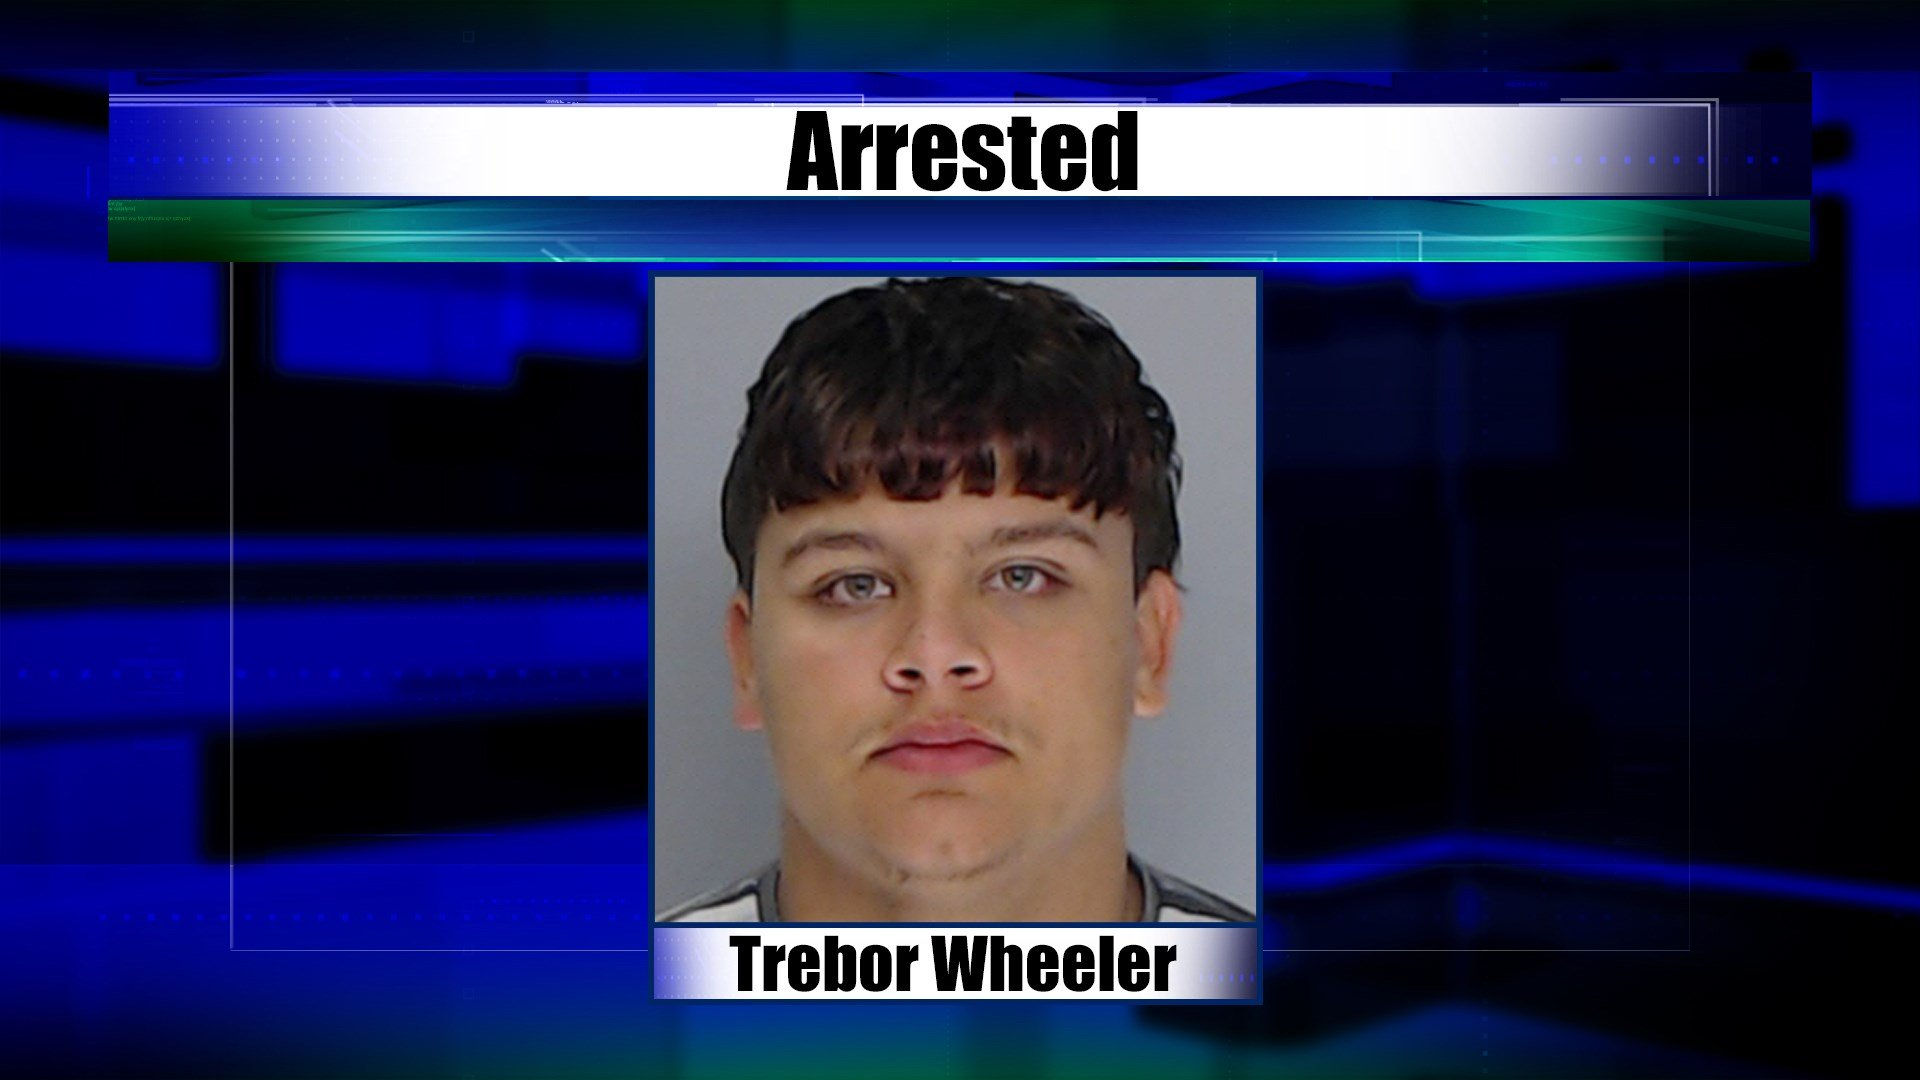 Sheriffs arrested Trebor Wheeler in connection to the home invasion and shooting of two people.